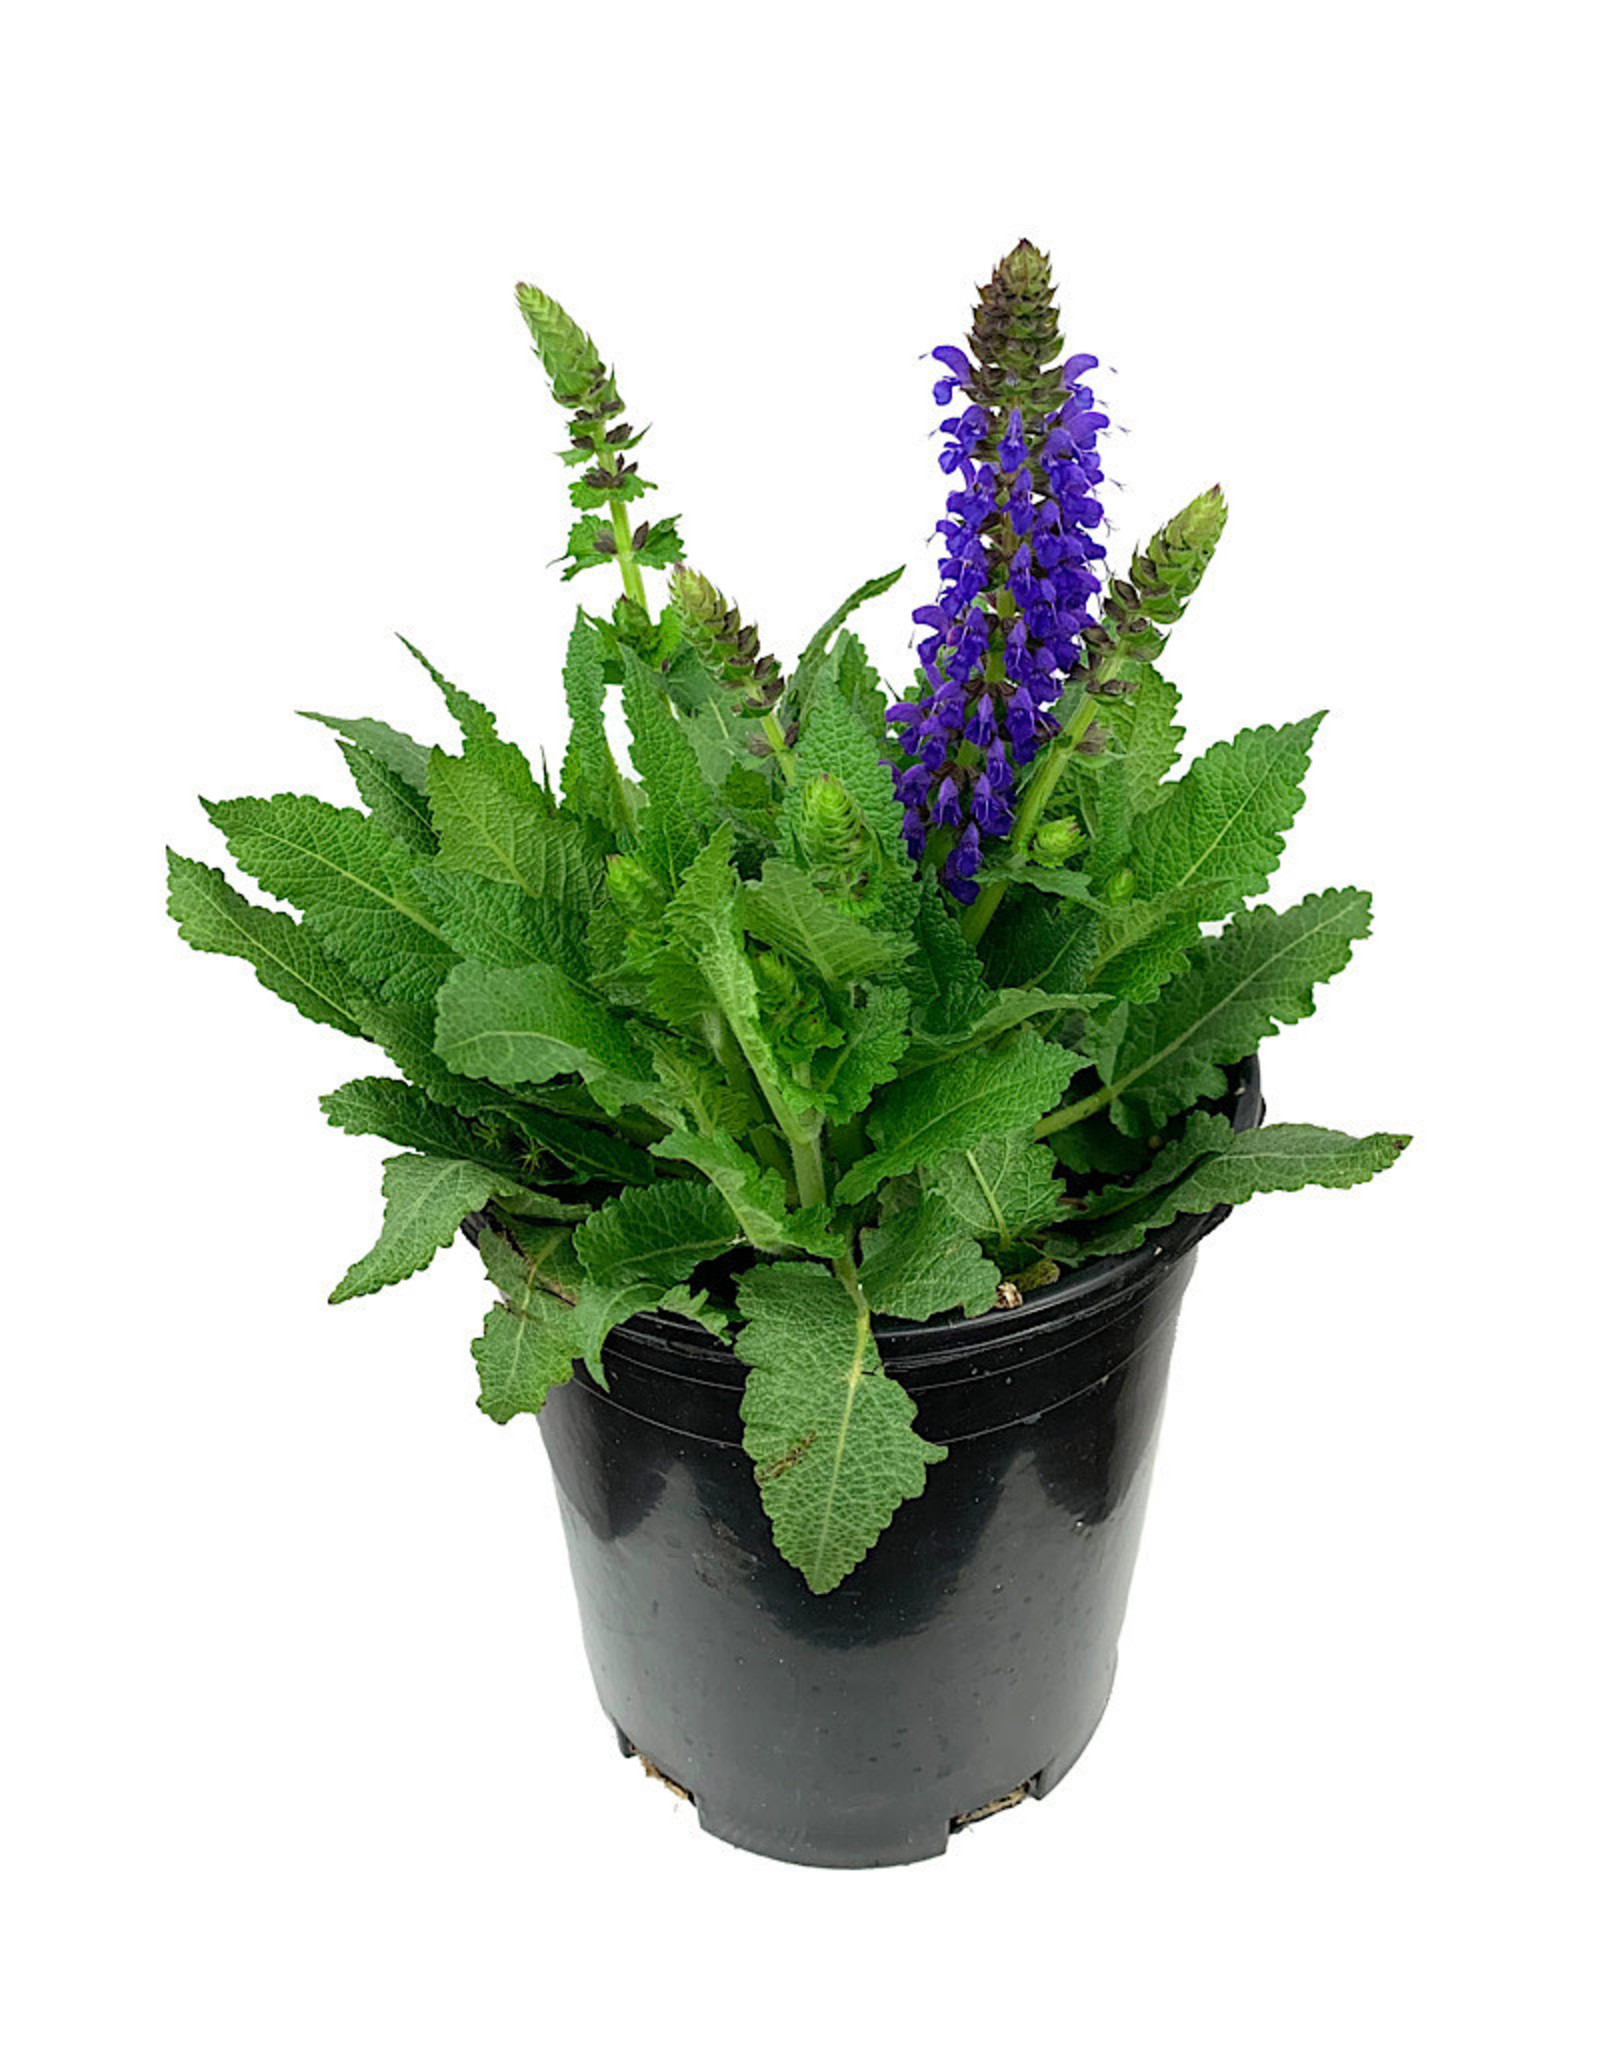 Salvia nemorosa 'April Night' 1 Gallon